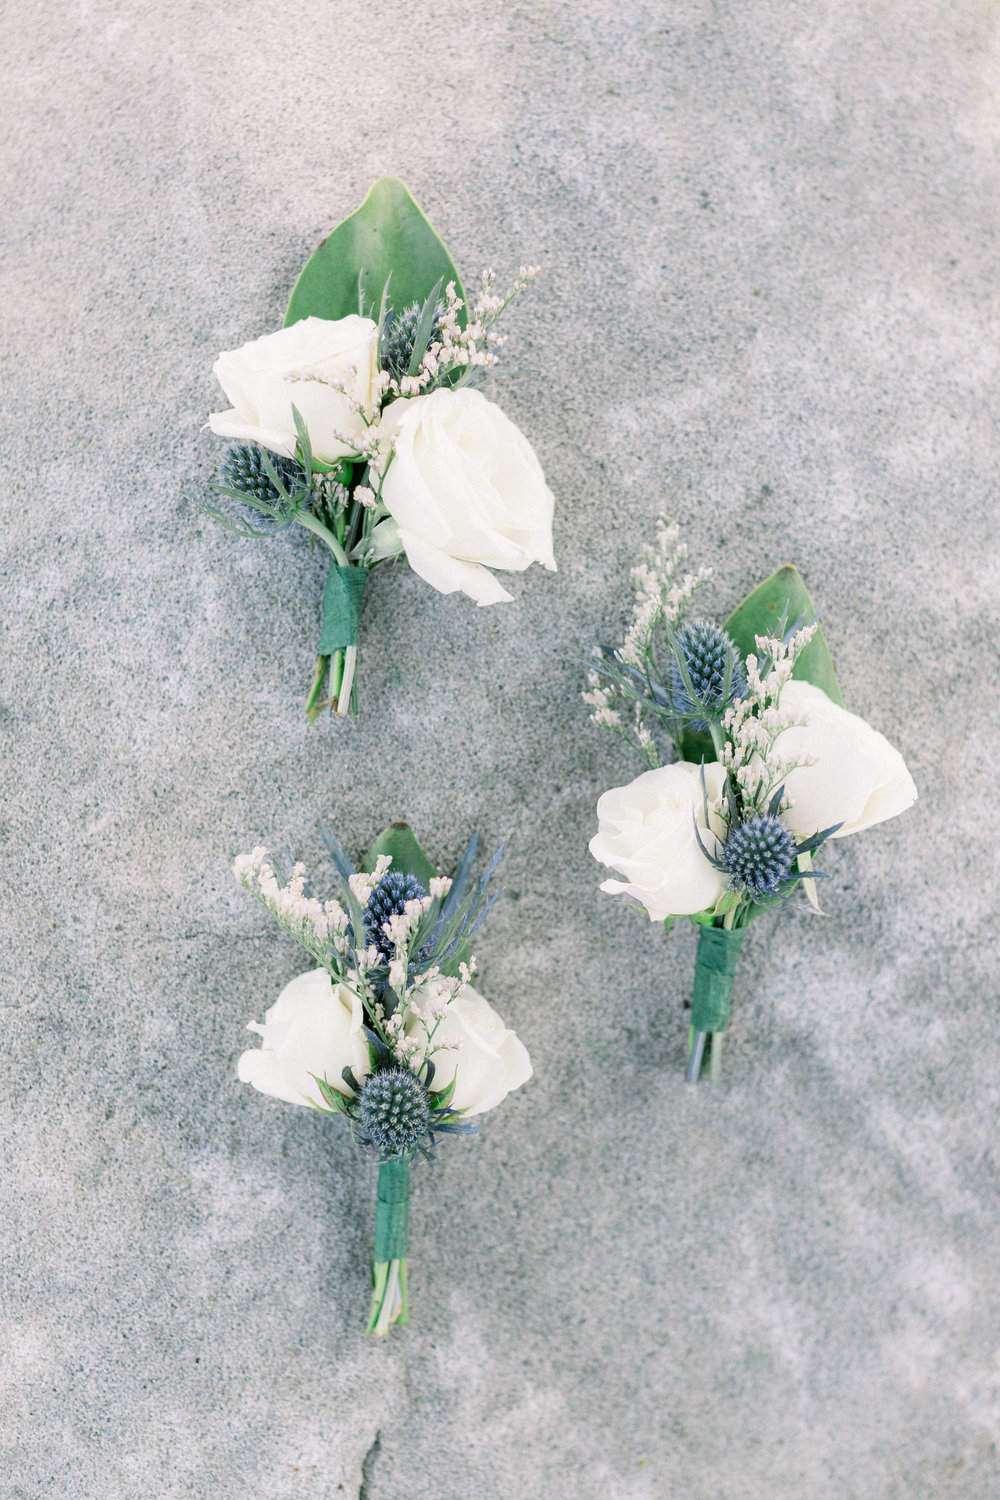 Boutonnieres for Pittsburgh wedding planned by Exhale Events. Find more wedding inspiration at exhale-events.com!